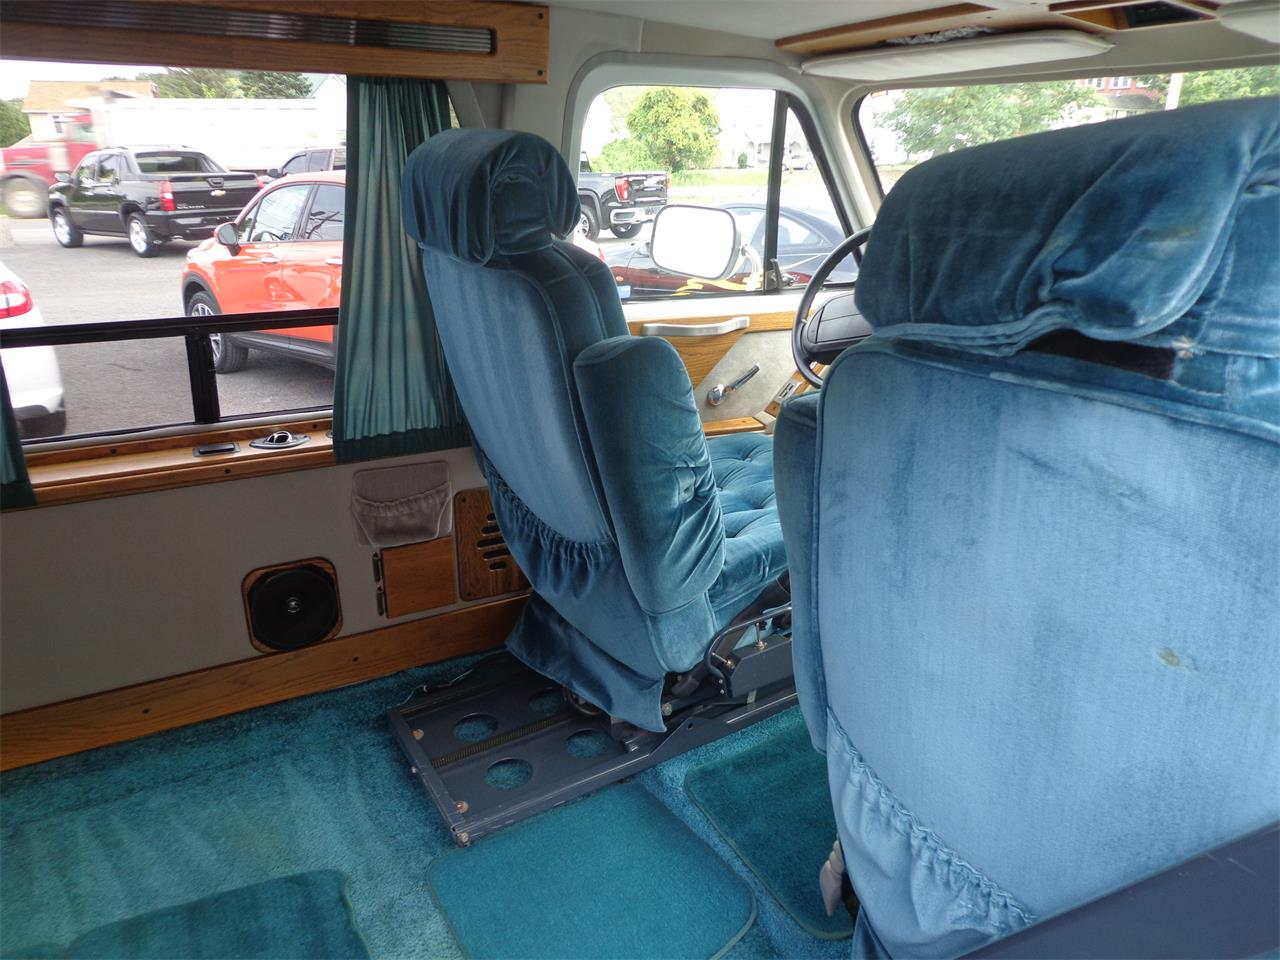 1995 Chevrolet G20 for sale in Mill Hall, PA – photo 16